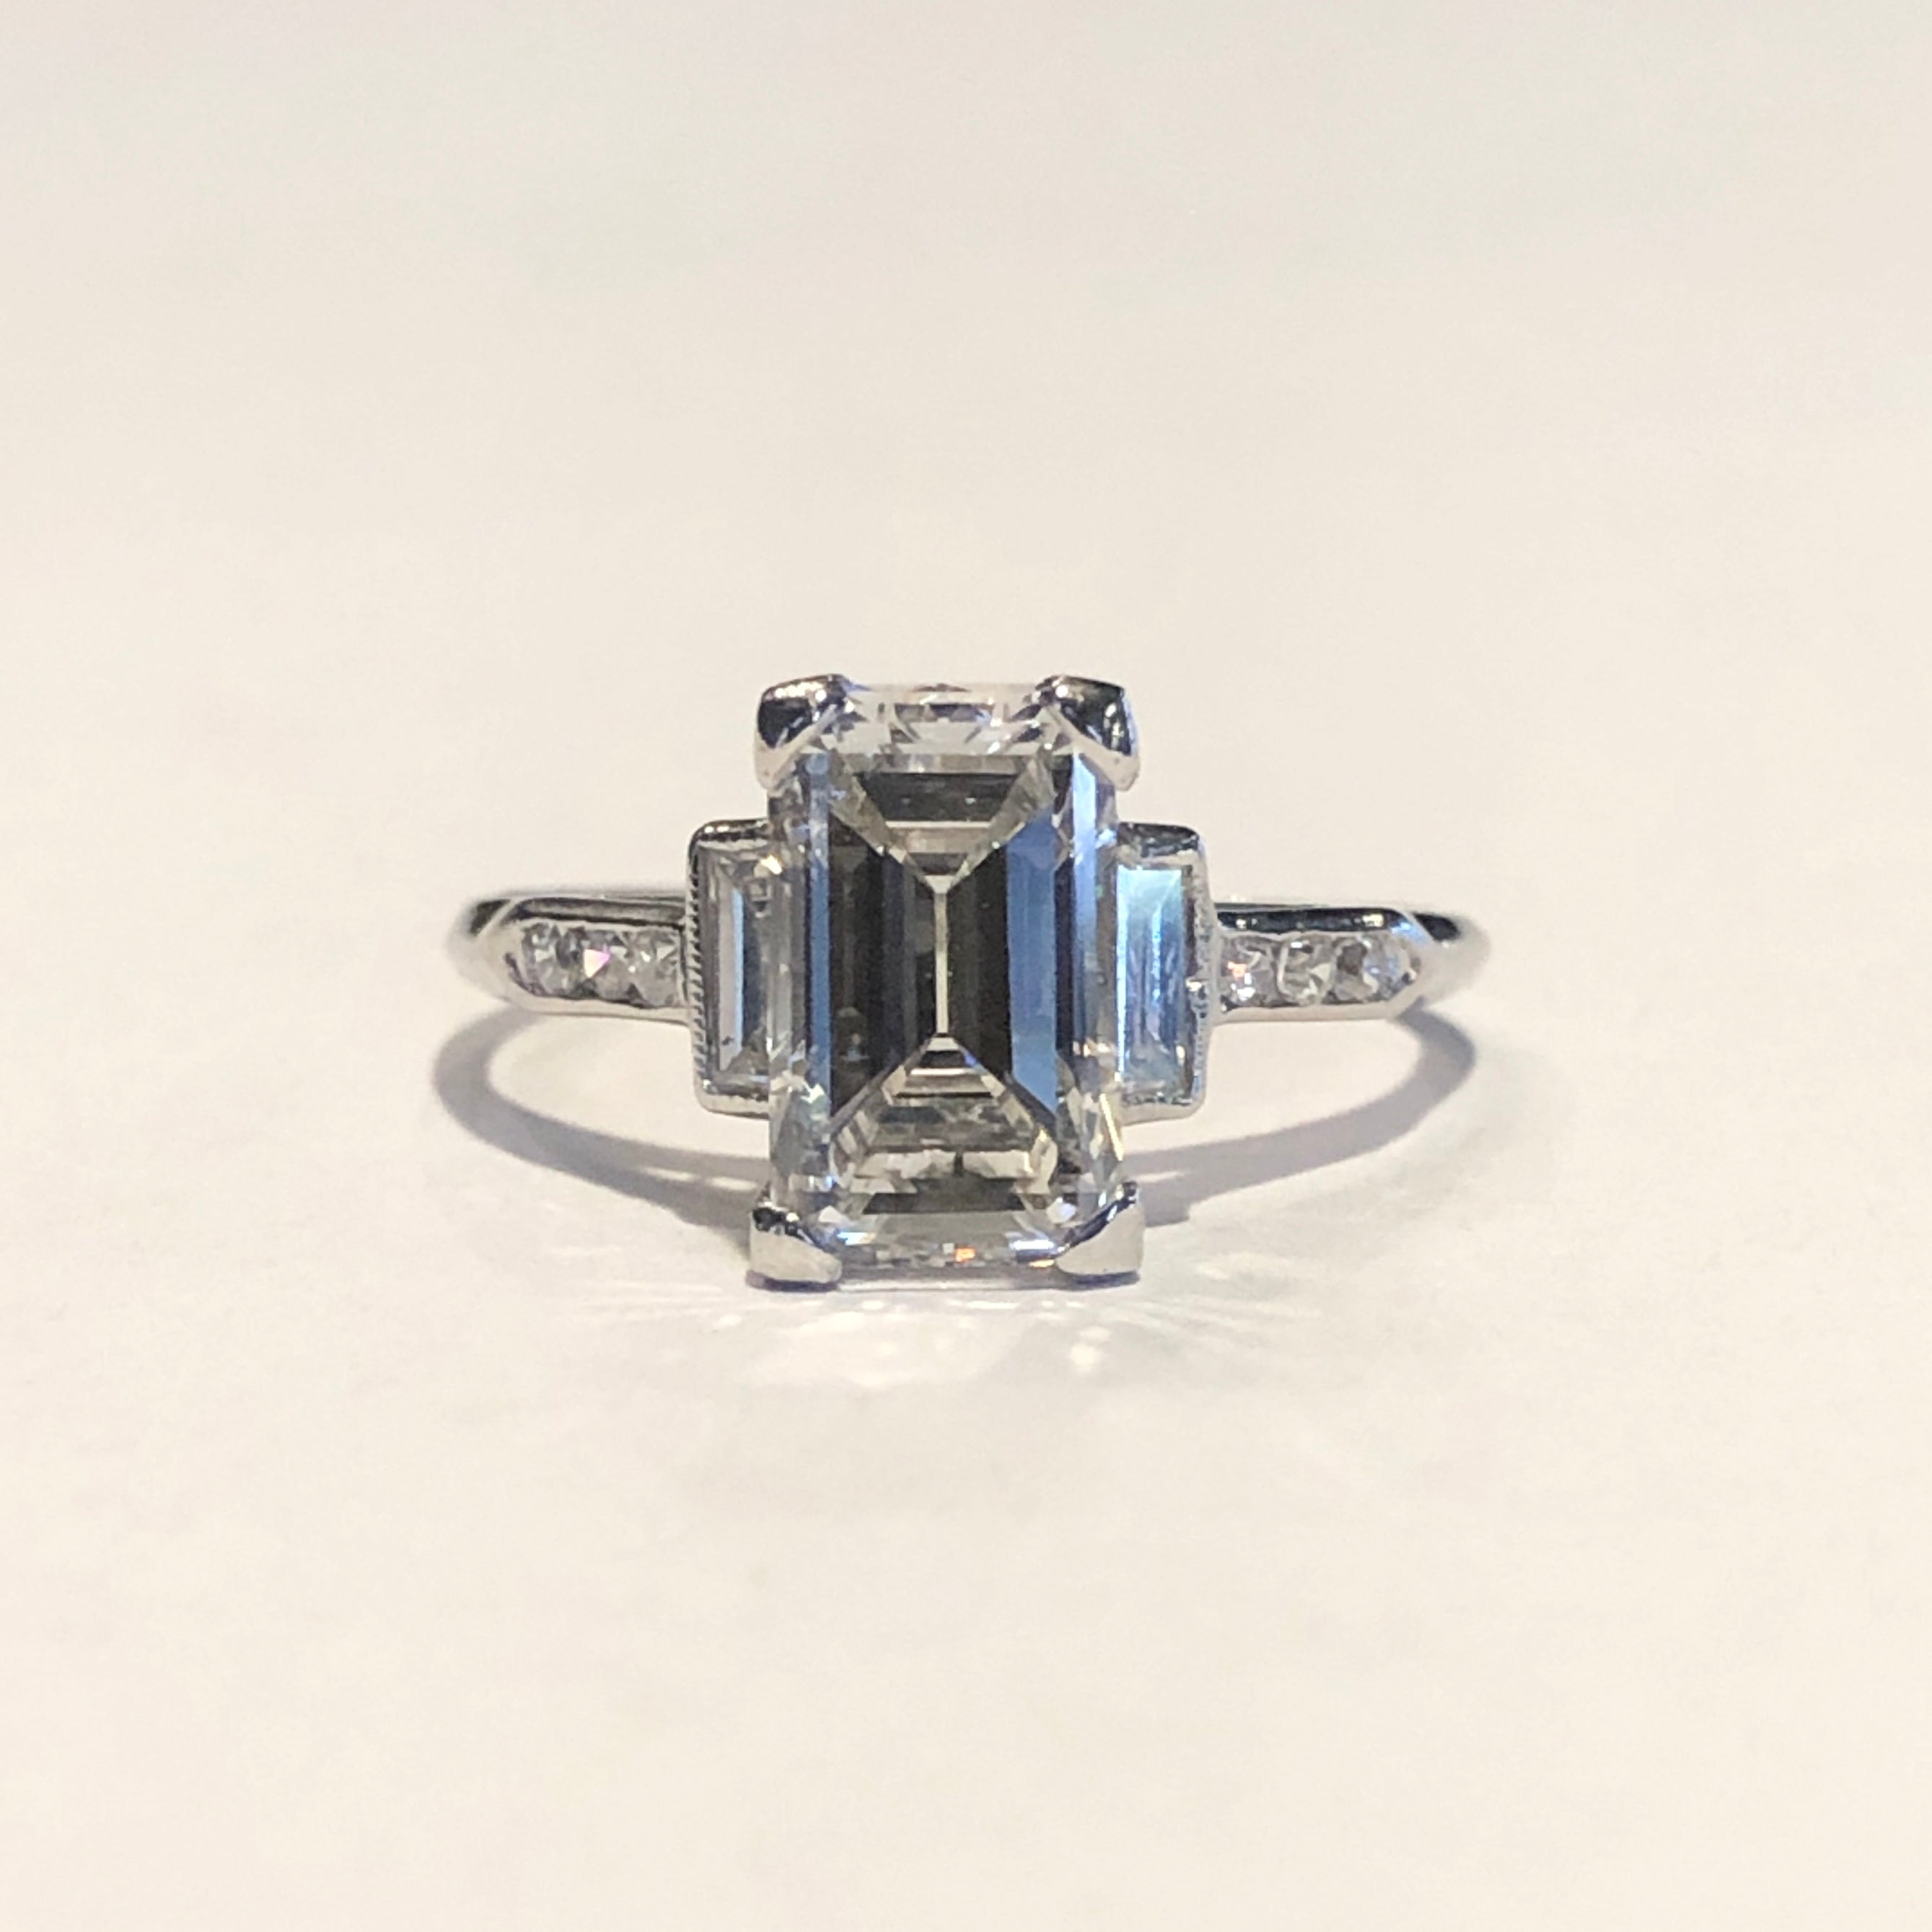 Custom 10014439 Art Deco era ring featuring 1.64ct emerald cut diamond